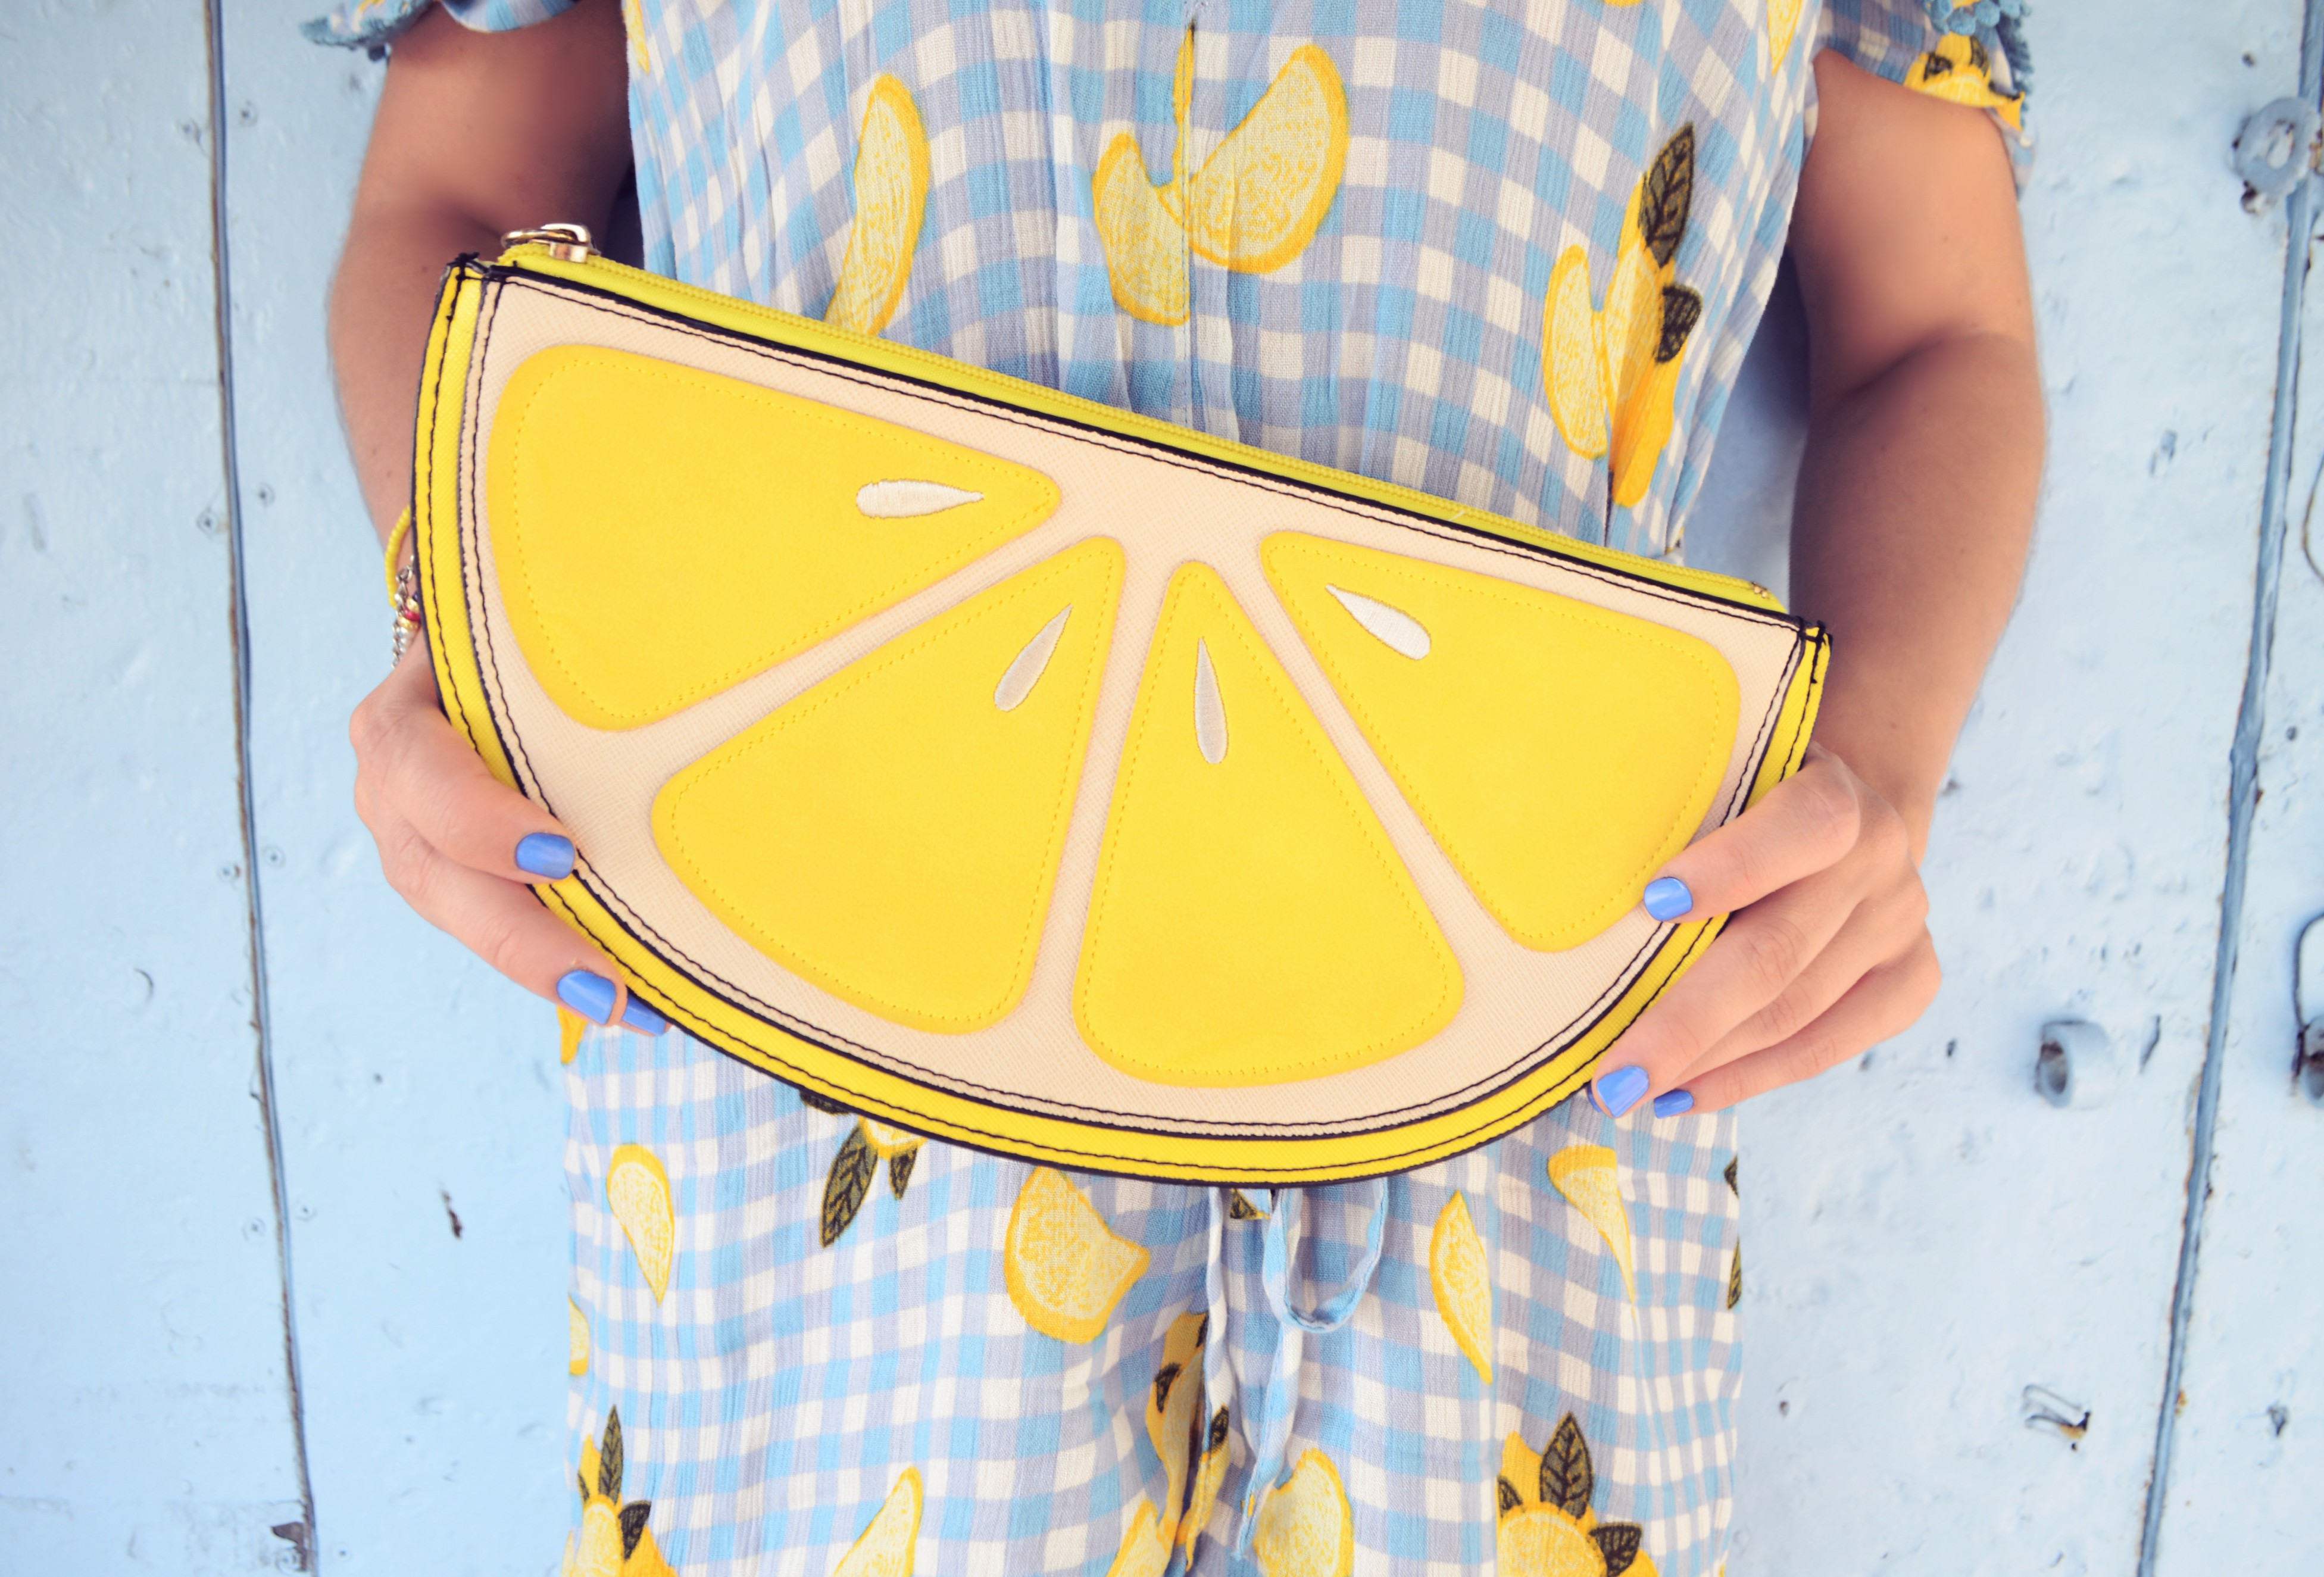 Fashionista-bolso-de-limon-newlook-style-ChicAdicta-influencer-jumpsuit-outfit-lemons-print-PiensaenChic-Piensa-en-Chic